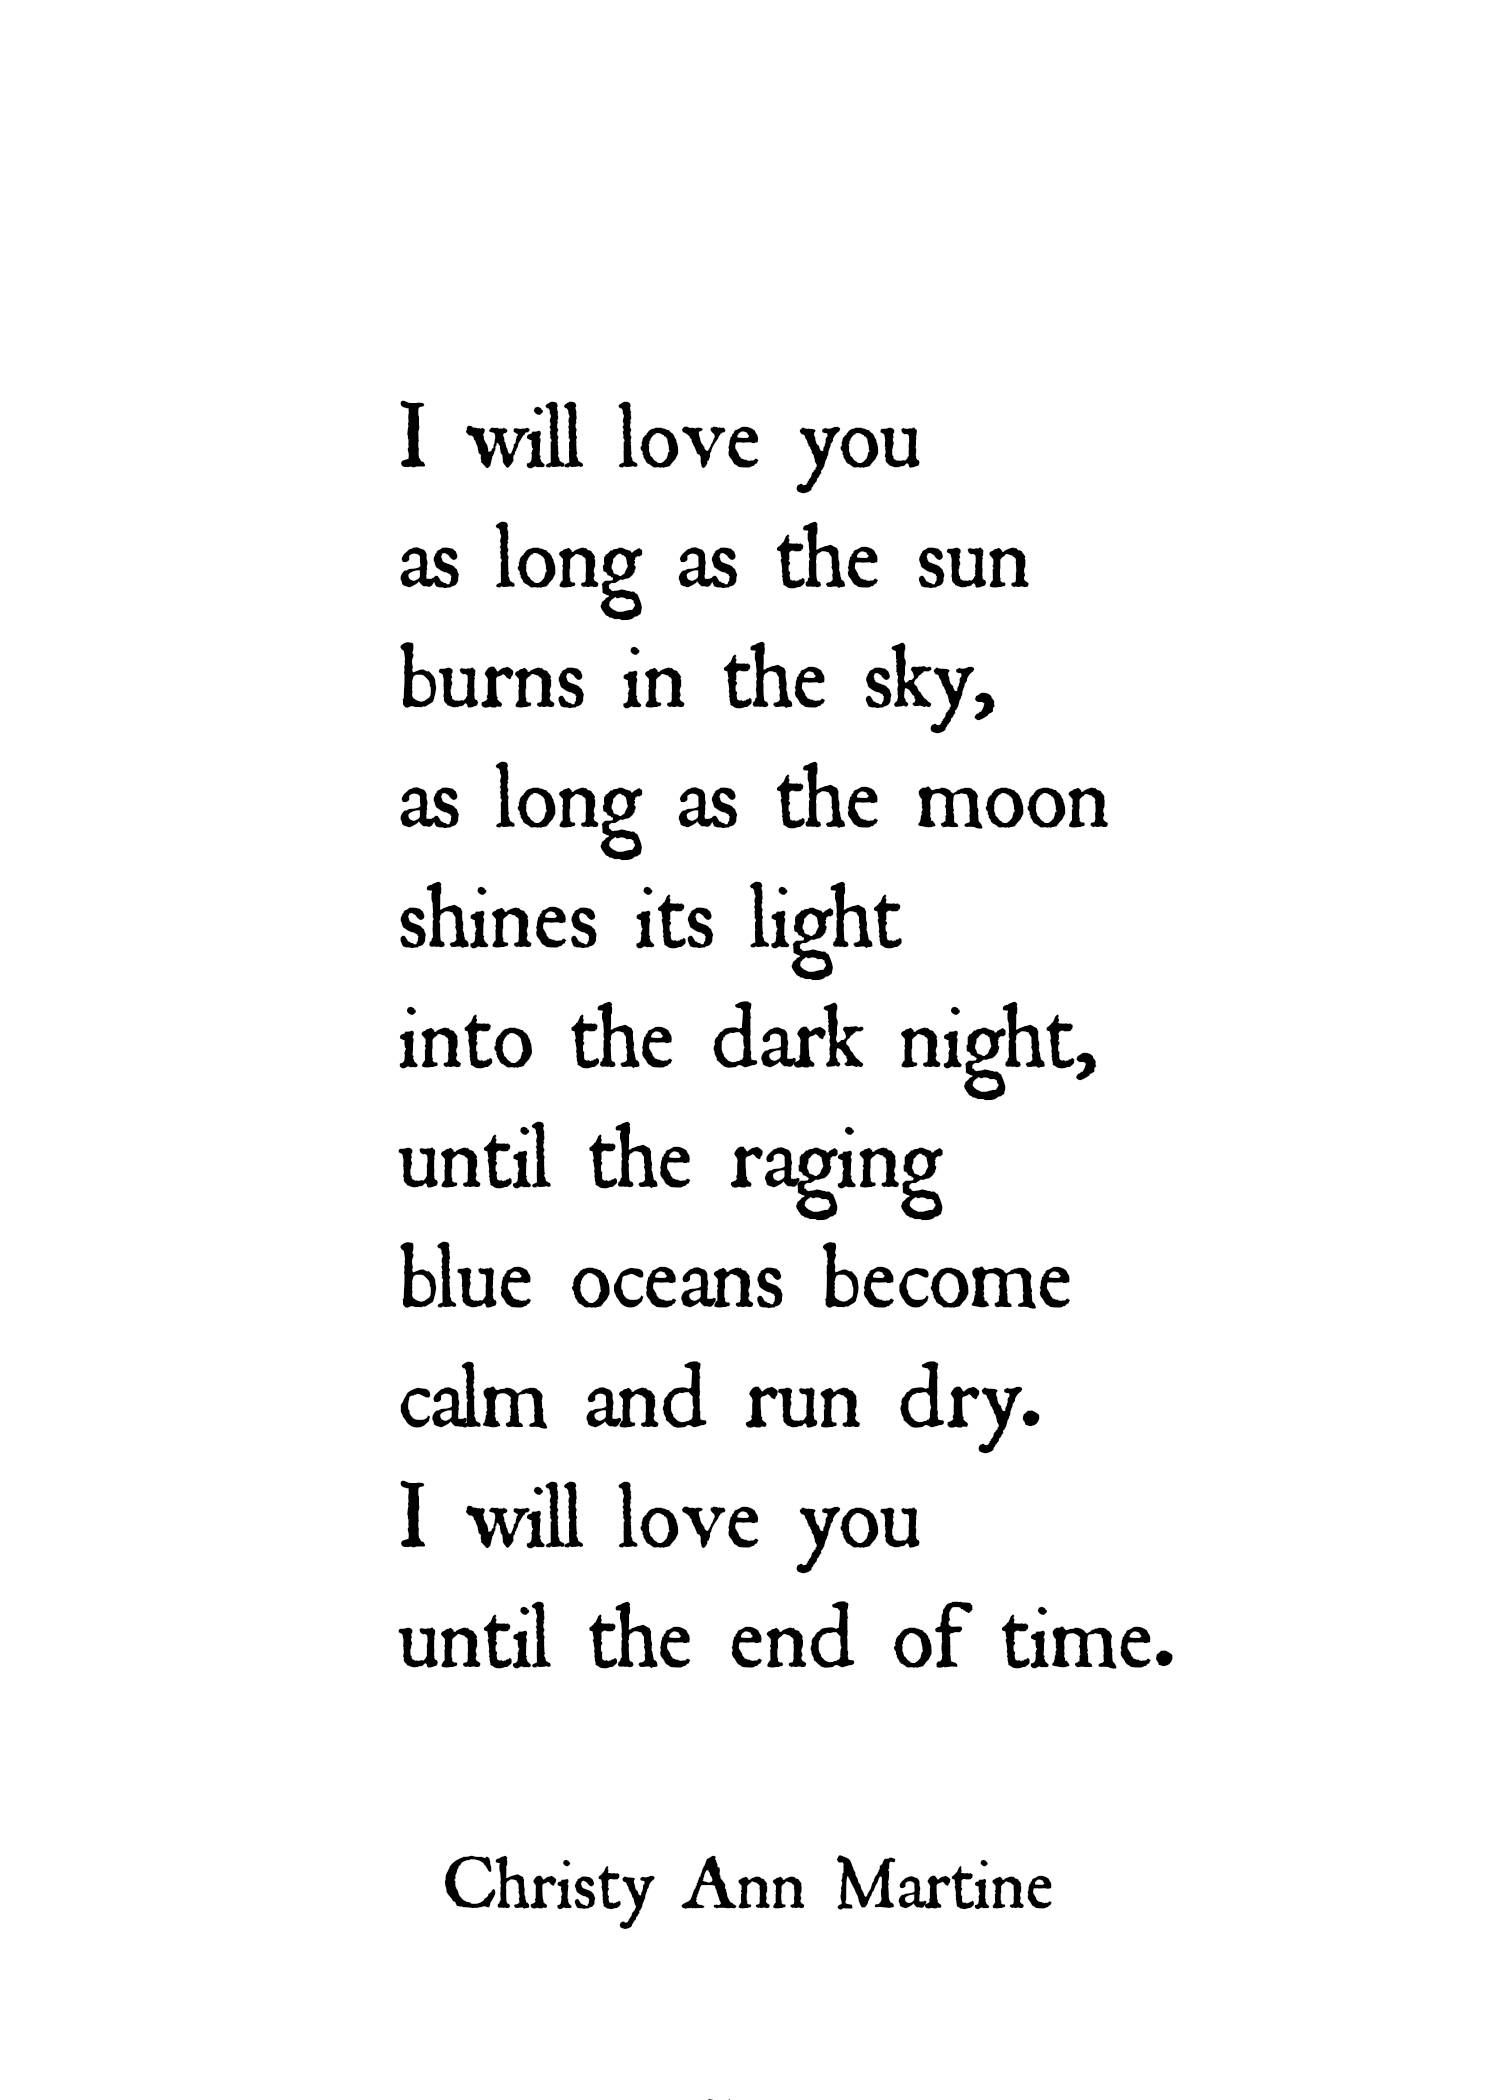 Pin By Kasey Ortiz On S E A S I D E V I L L A G E Romantic Love Poems Distance Love Quotes Love Yourself Quotes